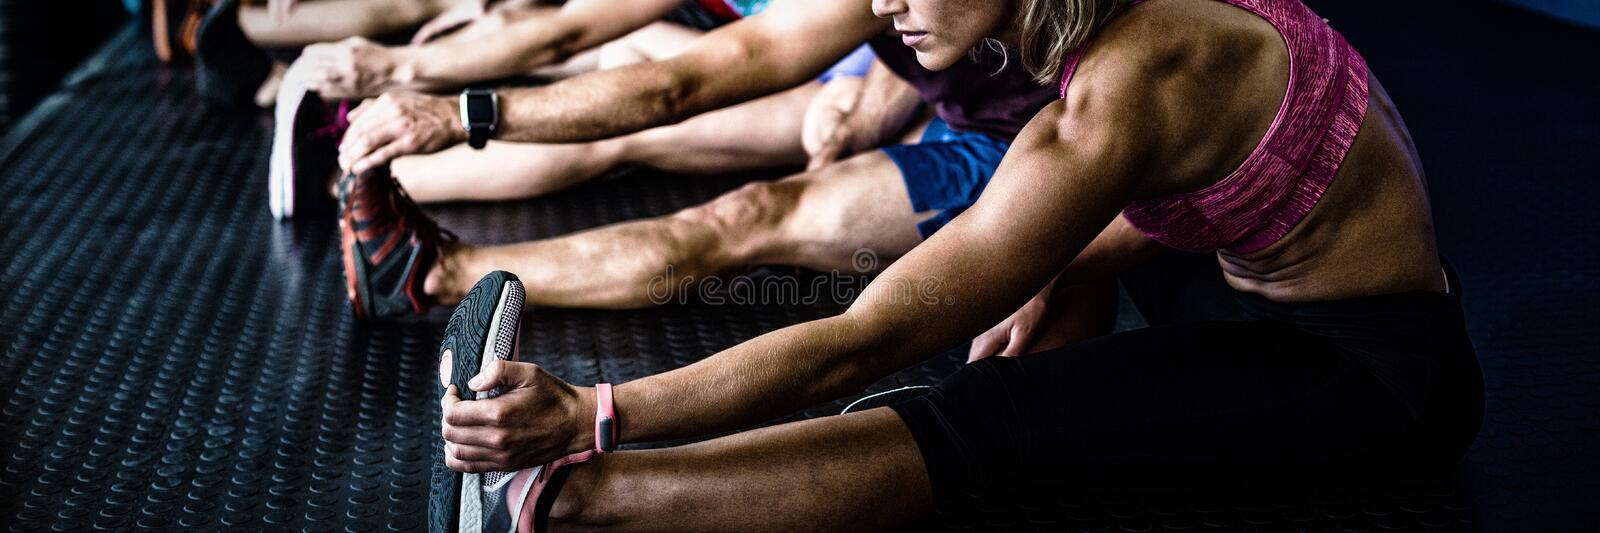 Side view of athletes stretching stock image